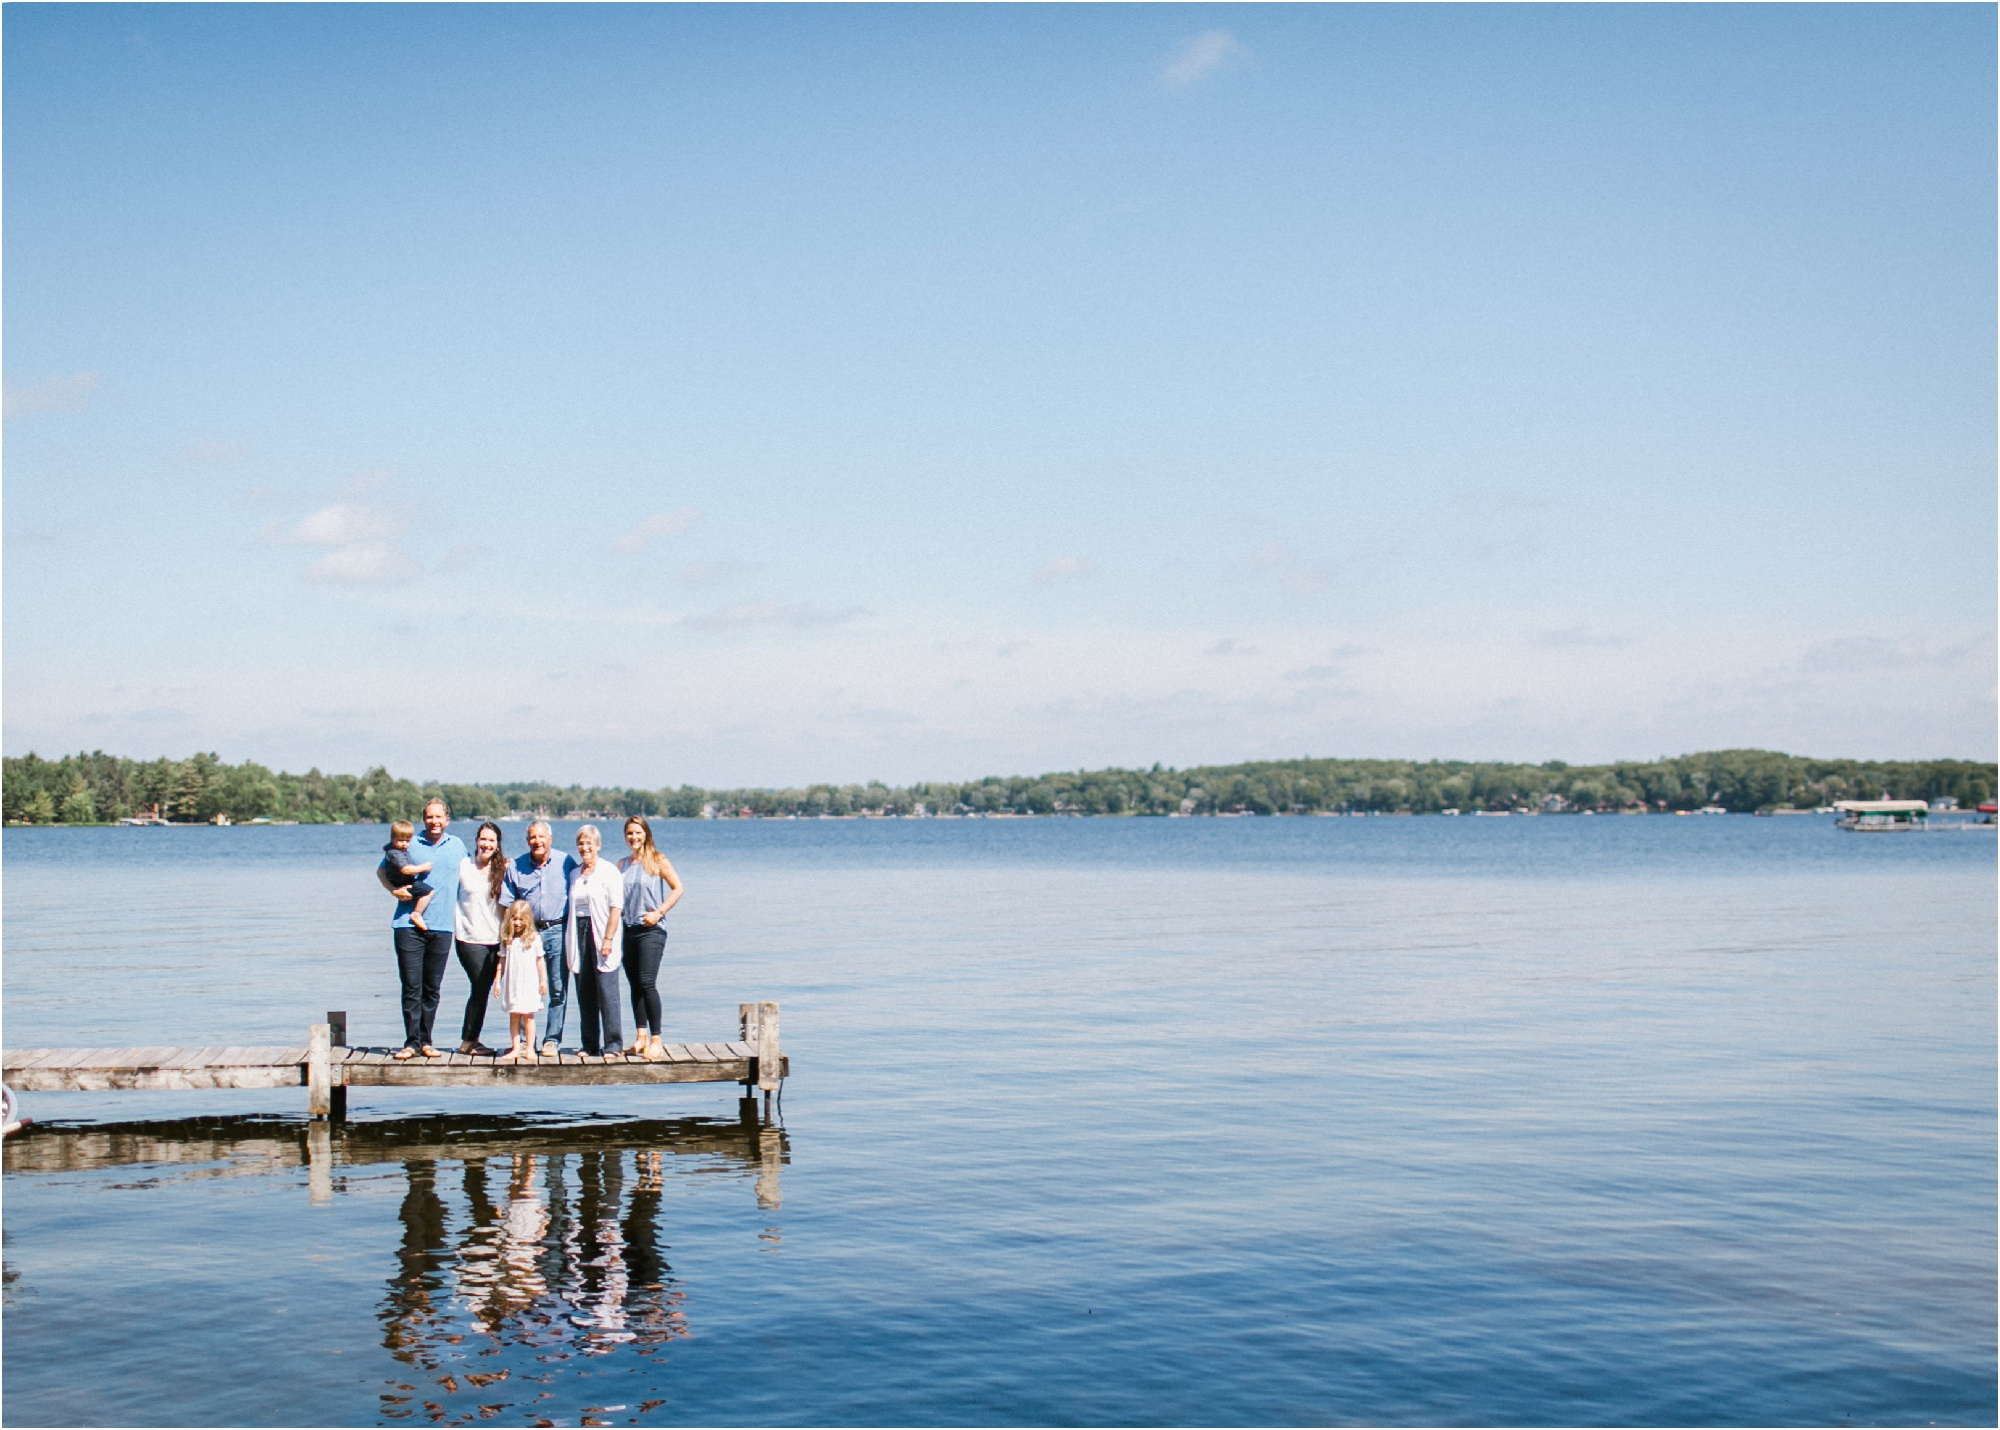 Nisswa Gull Lake Family Photographer Aimee Jobe Photography Lake Minnesota_0116.jpg